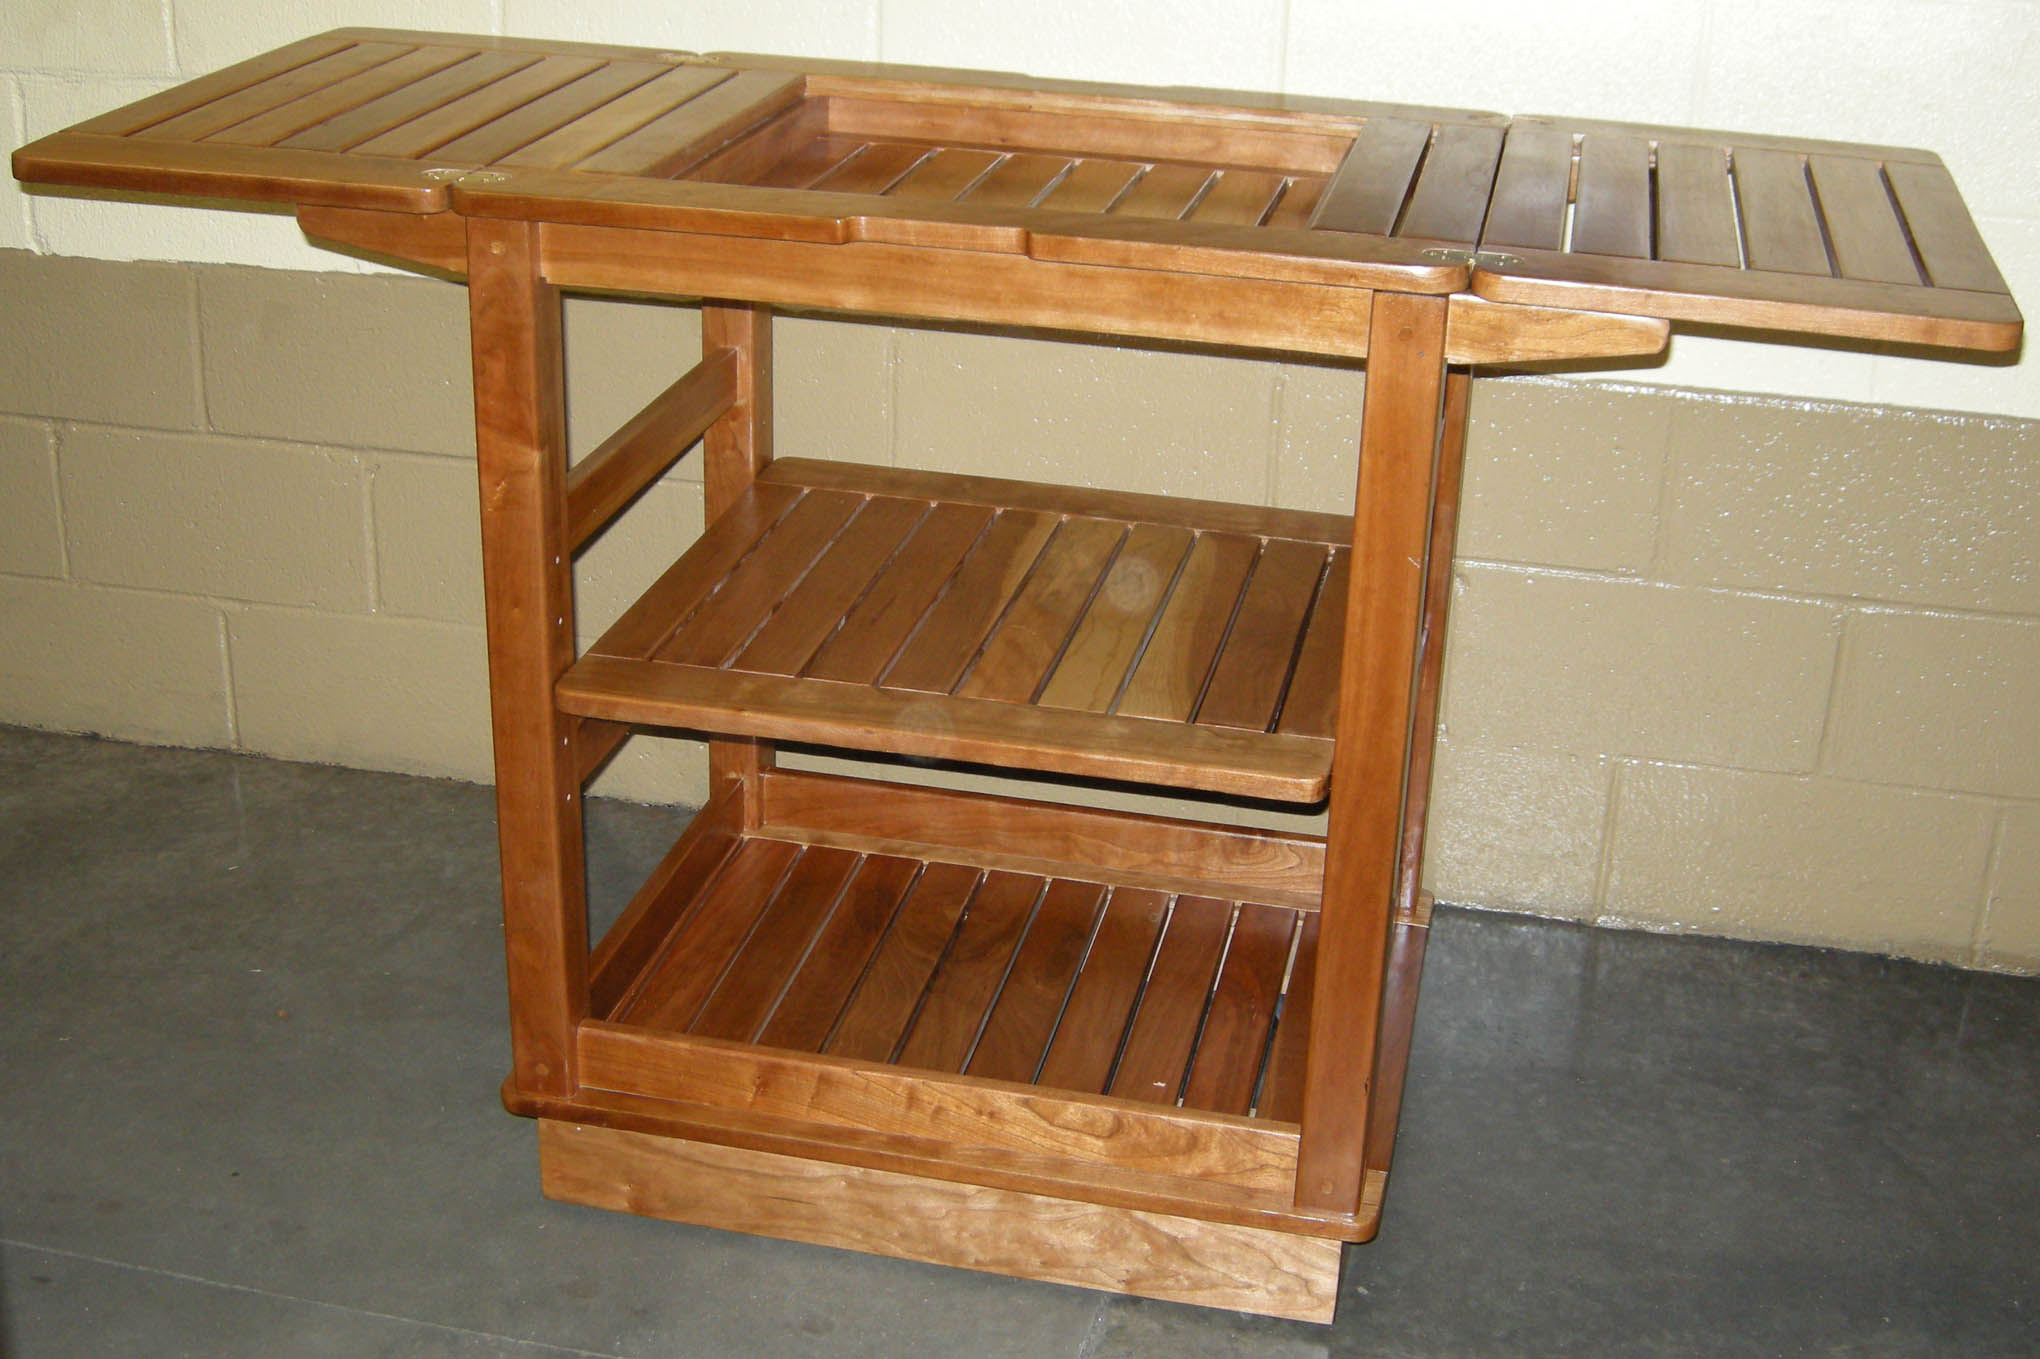 Click to enlarge,  This beautiful cherry kitchen cart will be among the items up for bid at the Central Carolina Community College Foundation's 18th Annual Furniture Auction Saturday, June 2, in the Multipurpose Room of the Miriello Building on the college's Harnett County Campus, 1075 E. Cornelius Harnett Blvd. Viewing and registration starts at 9 a.m. and bidding, at 10 a.m. For more information about the CCCC Foundation Furniture Auction, call 910-893-9101 or go online to www.cccc.edu/auction to see a photo gallery of the auction pieces.